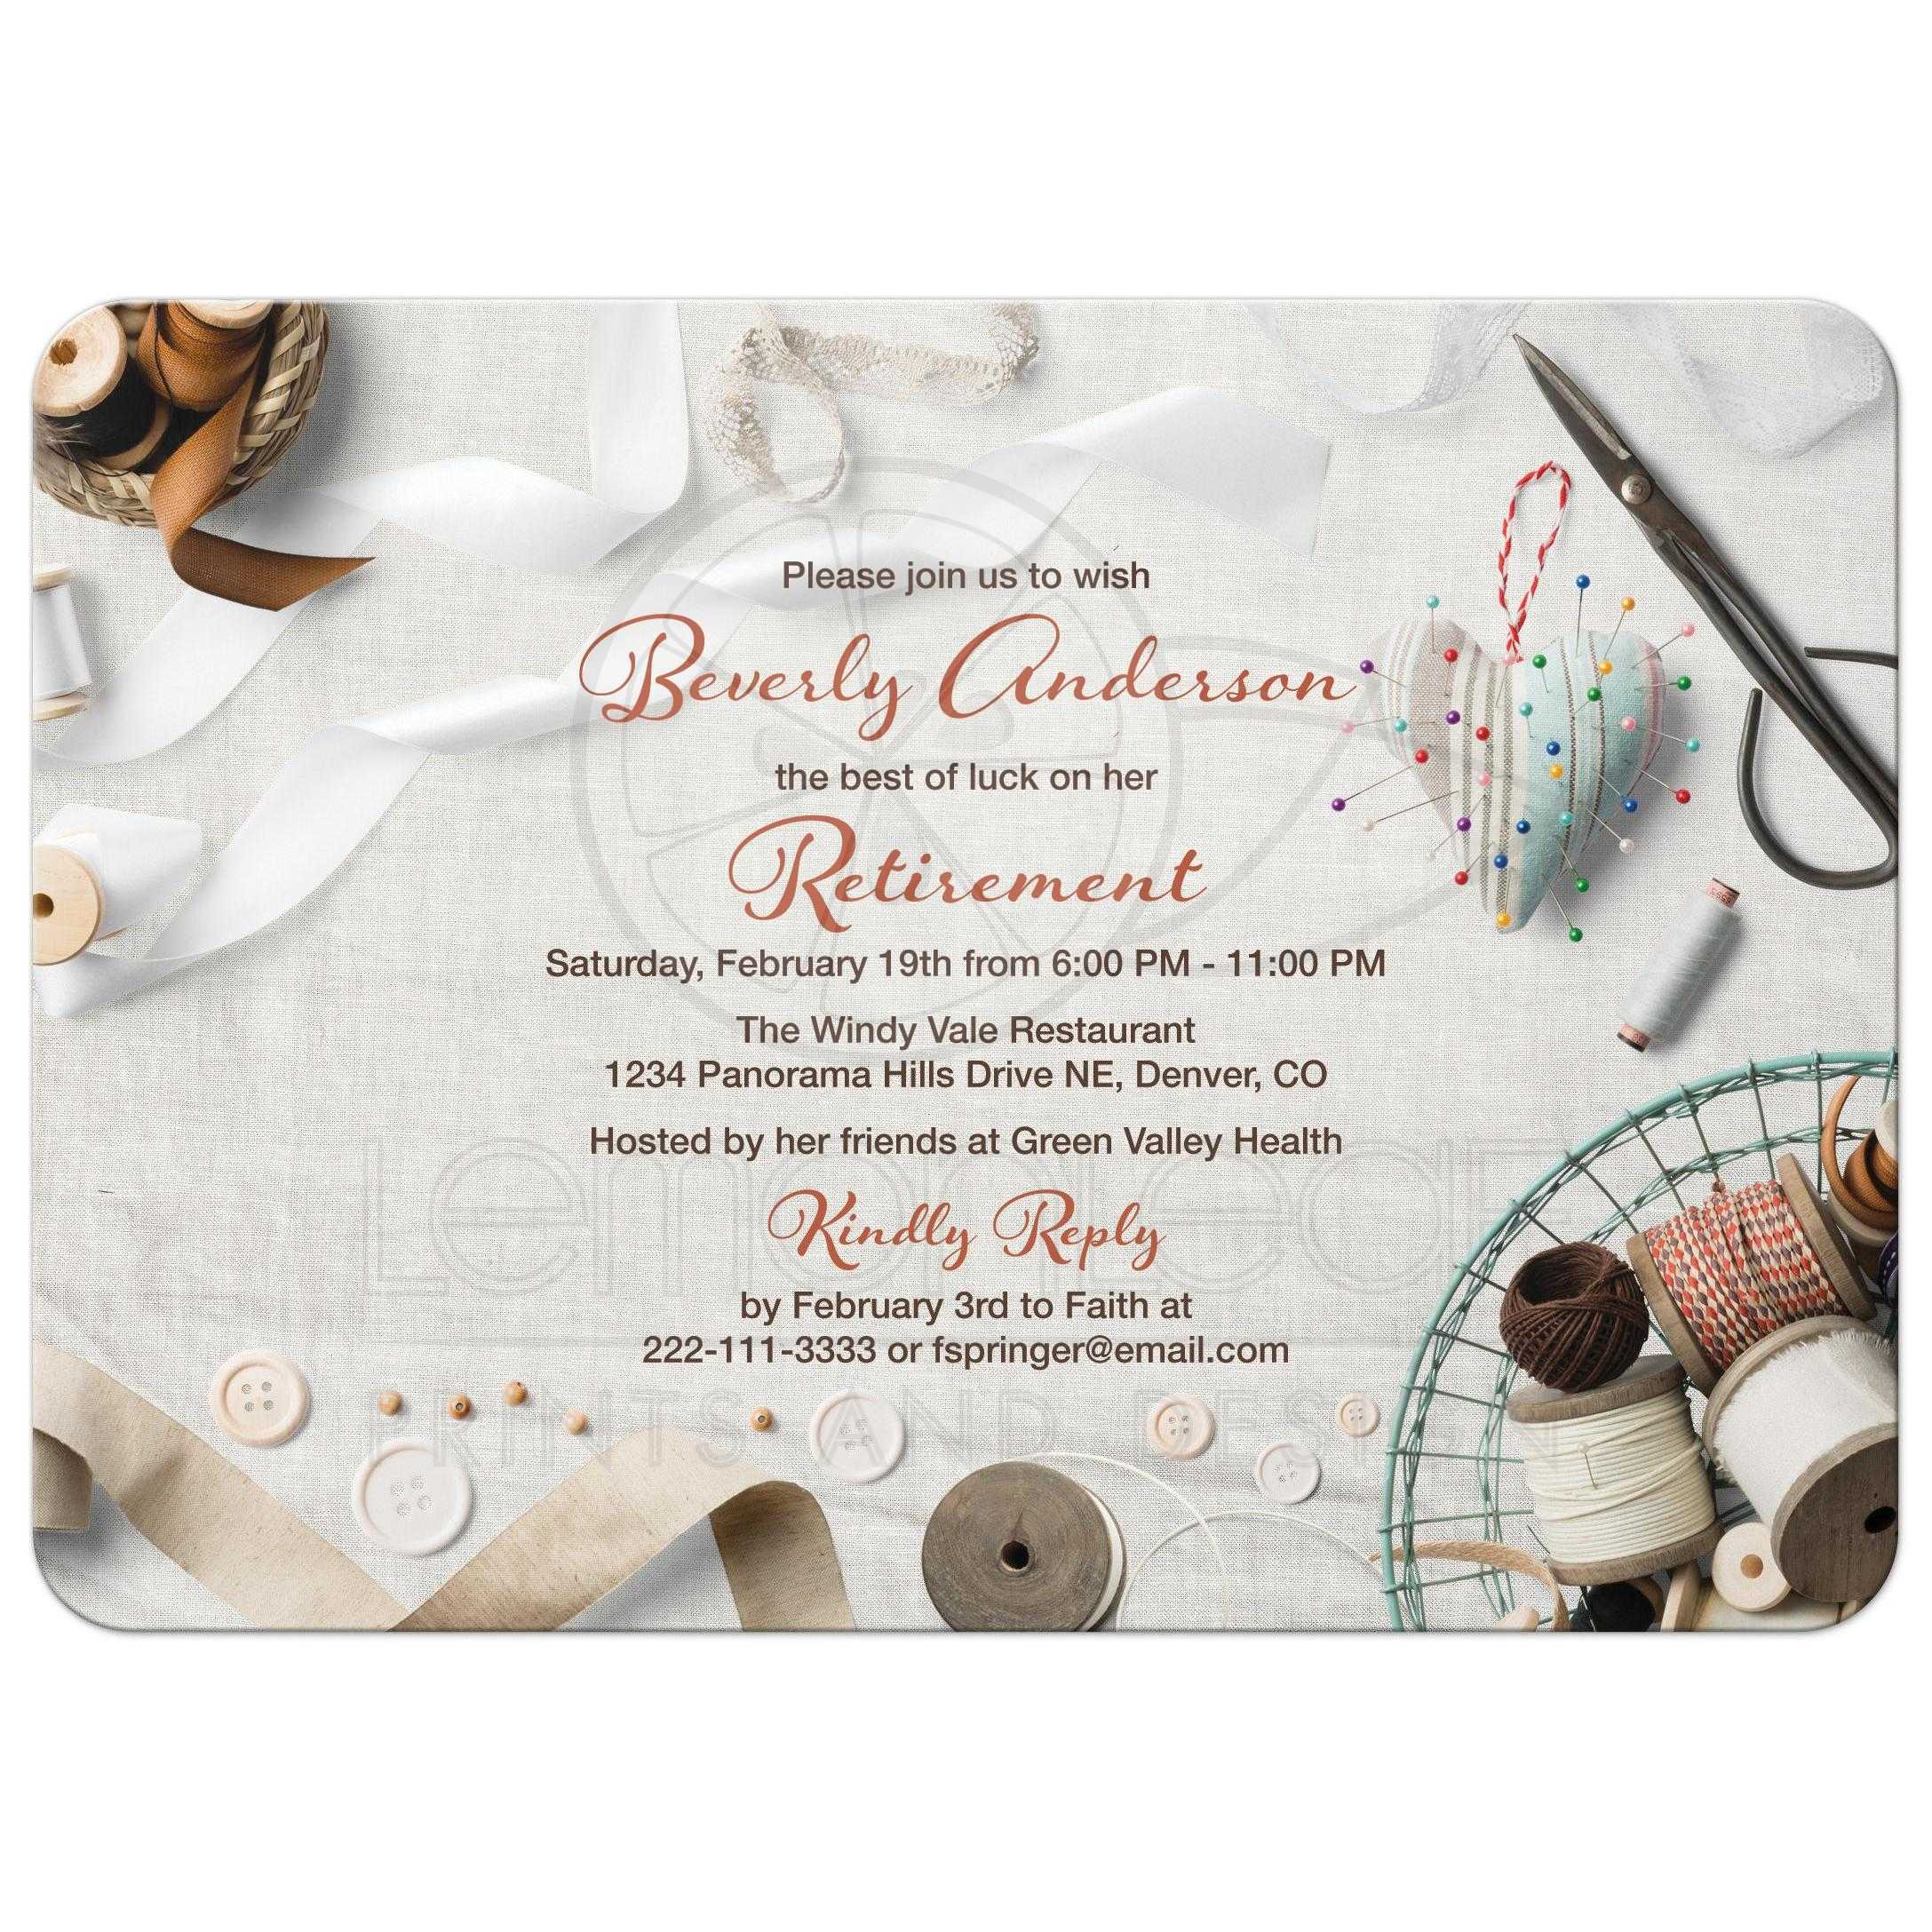 Seamstress Sewing Retirement Party Invitation